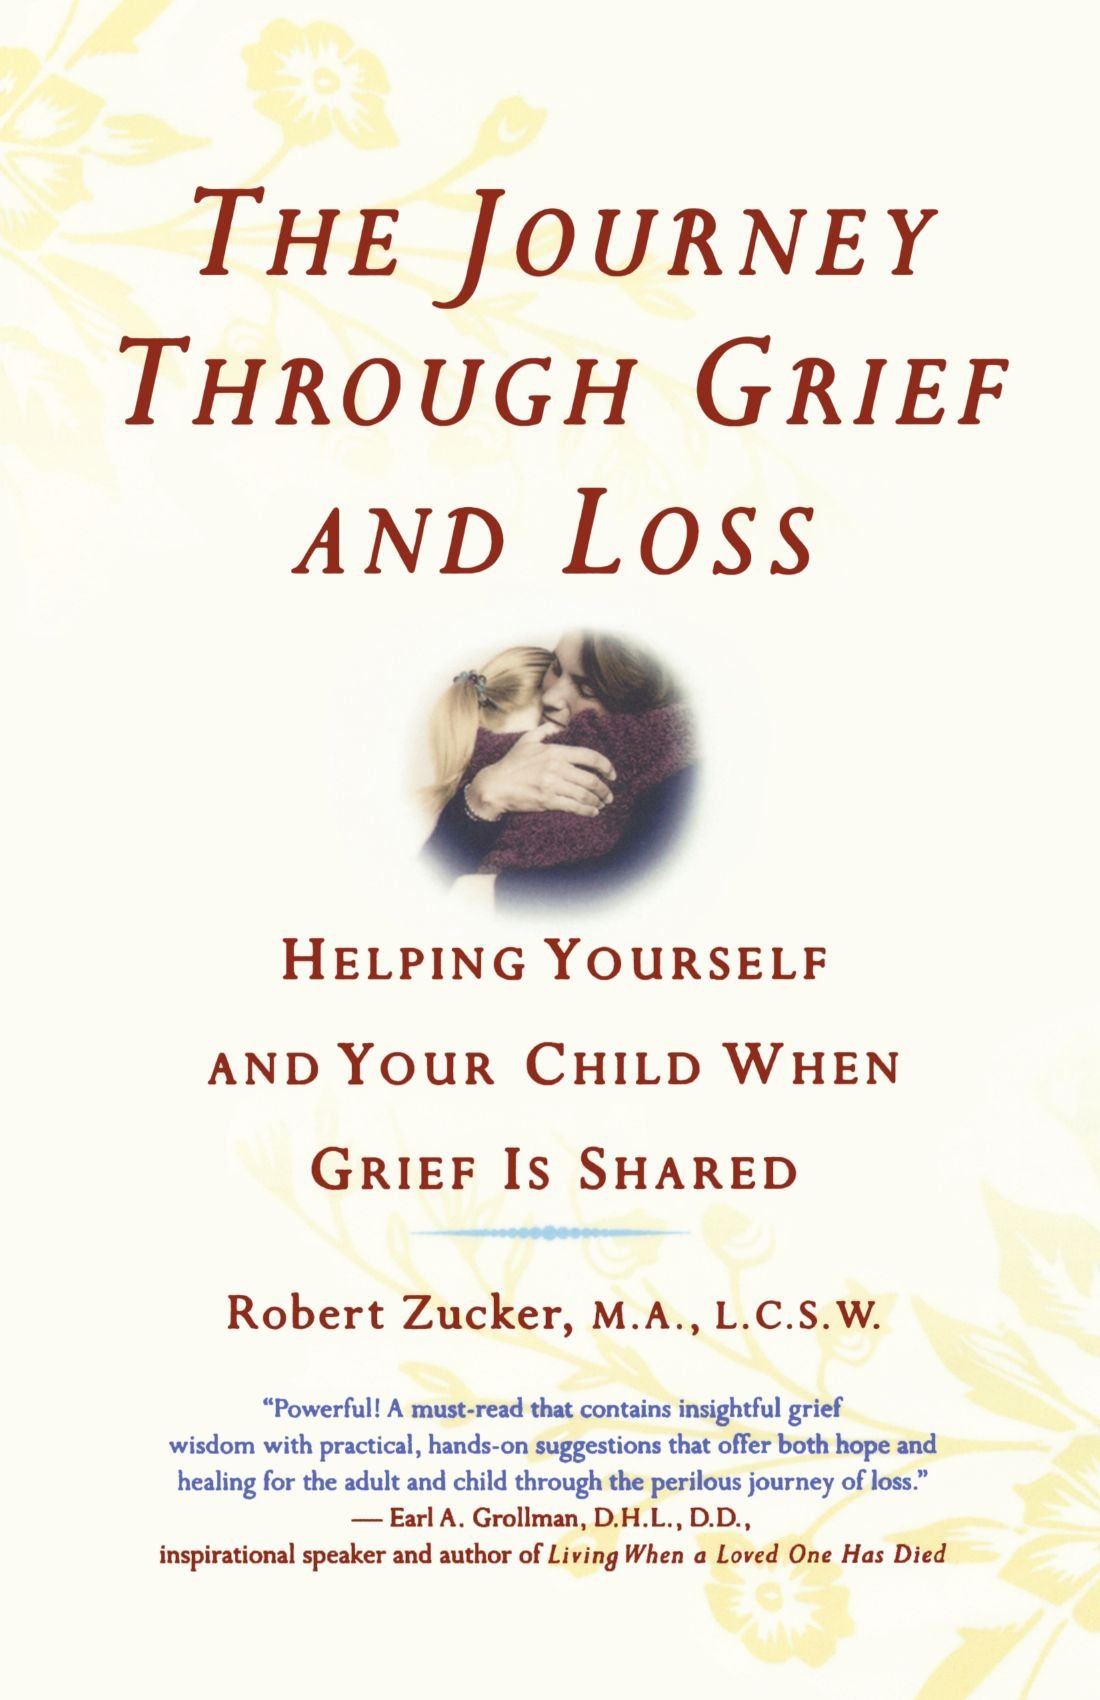 Grappling with Grief: Losing a Beloved Pet